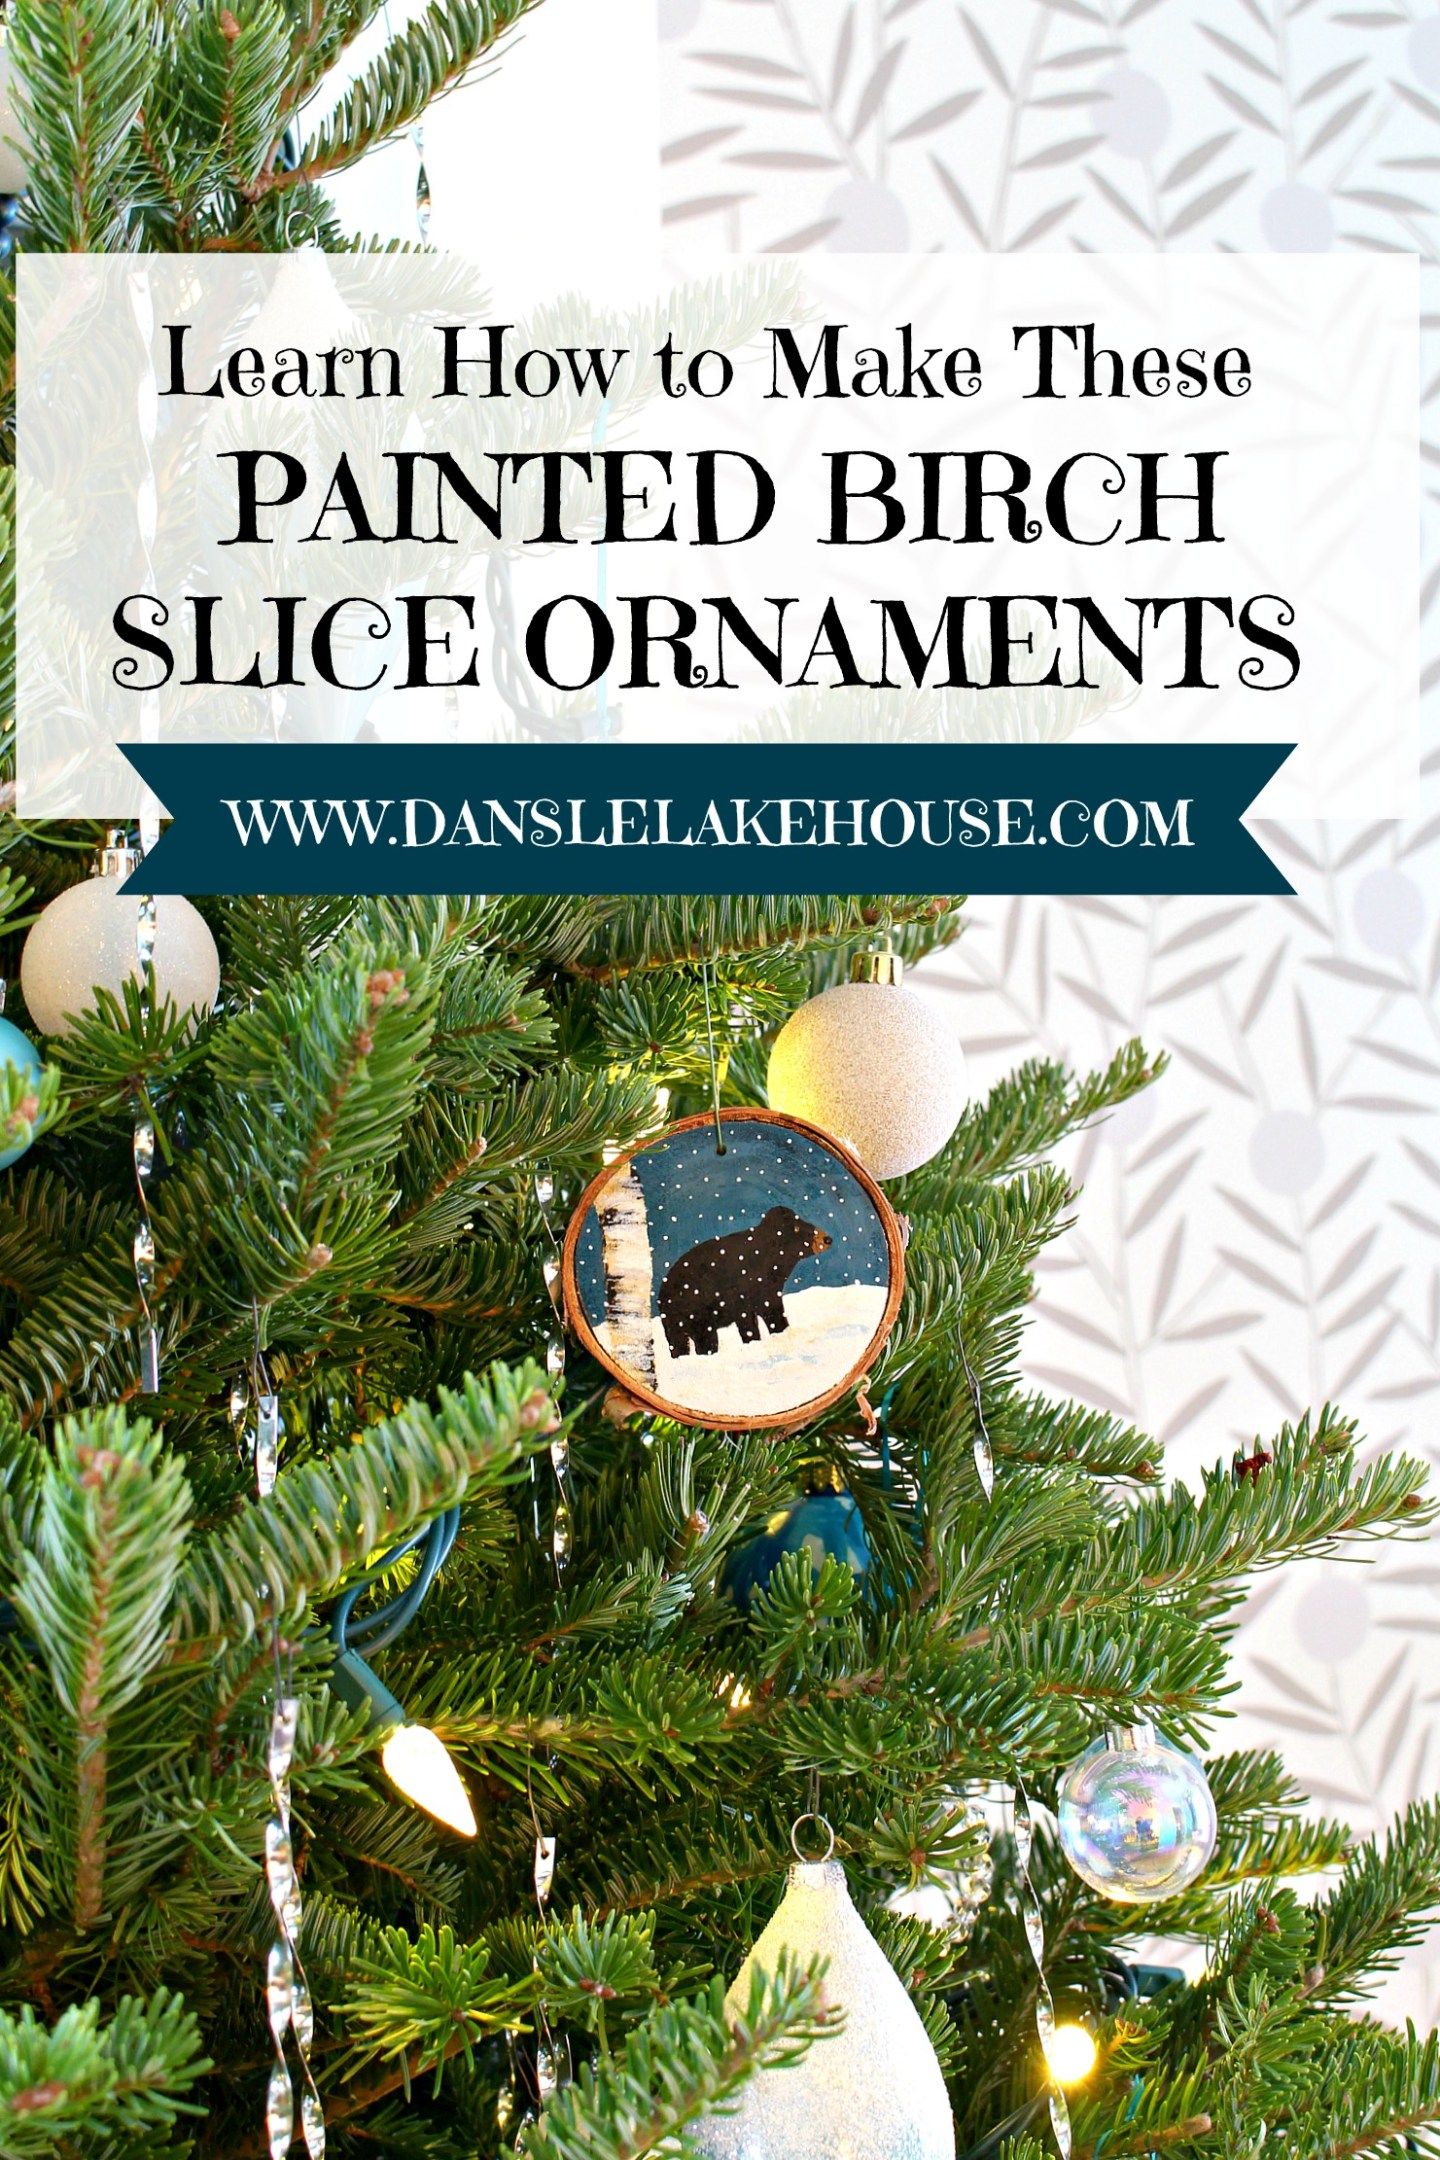 Learn How to Make These Painted Birch Slice Ornaments